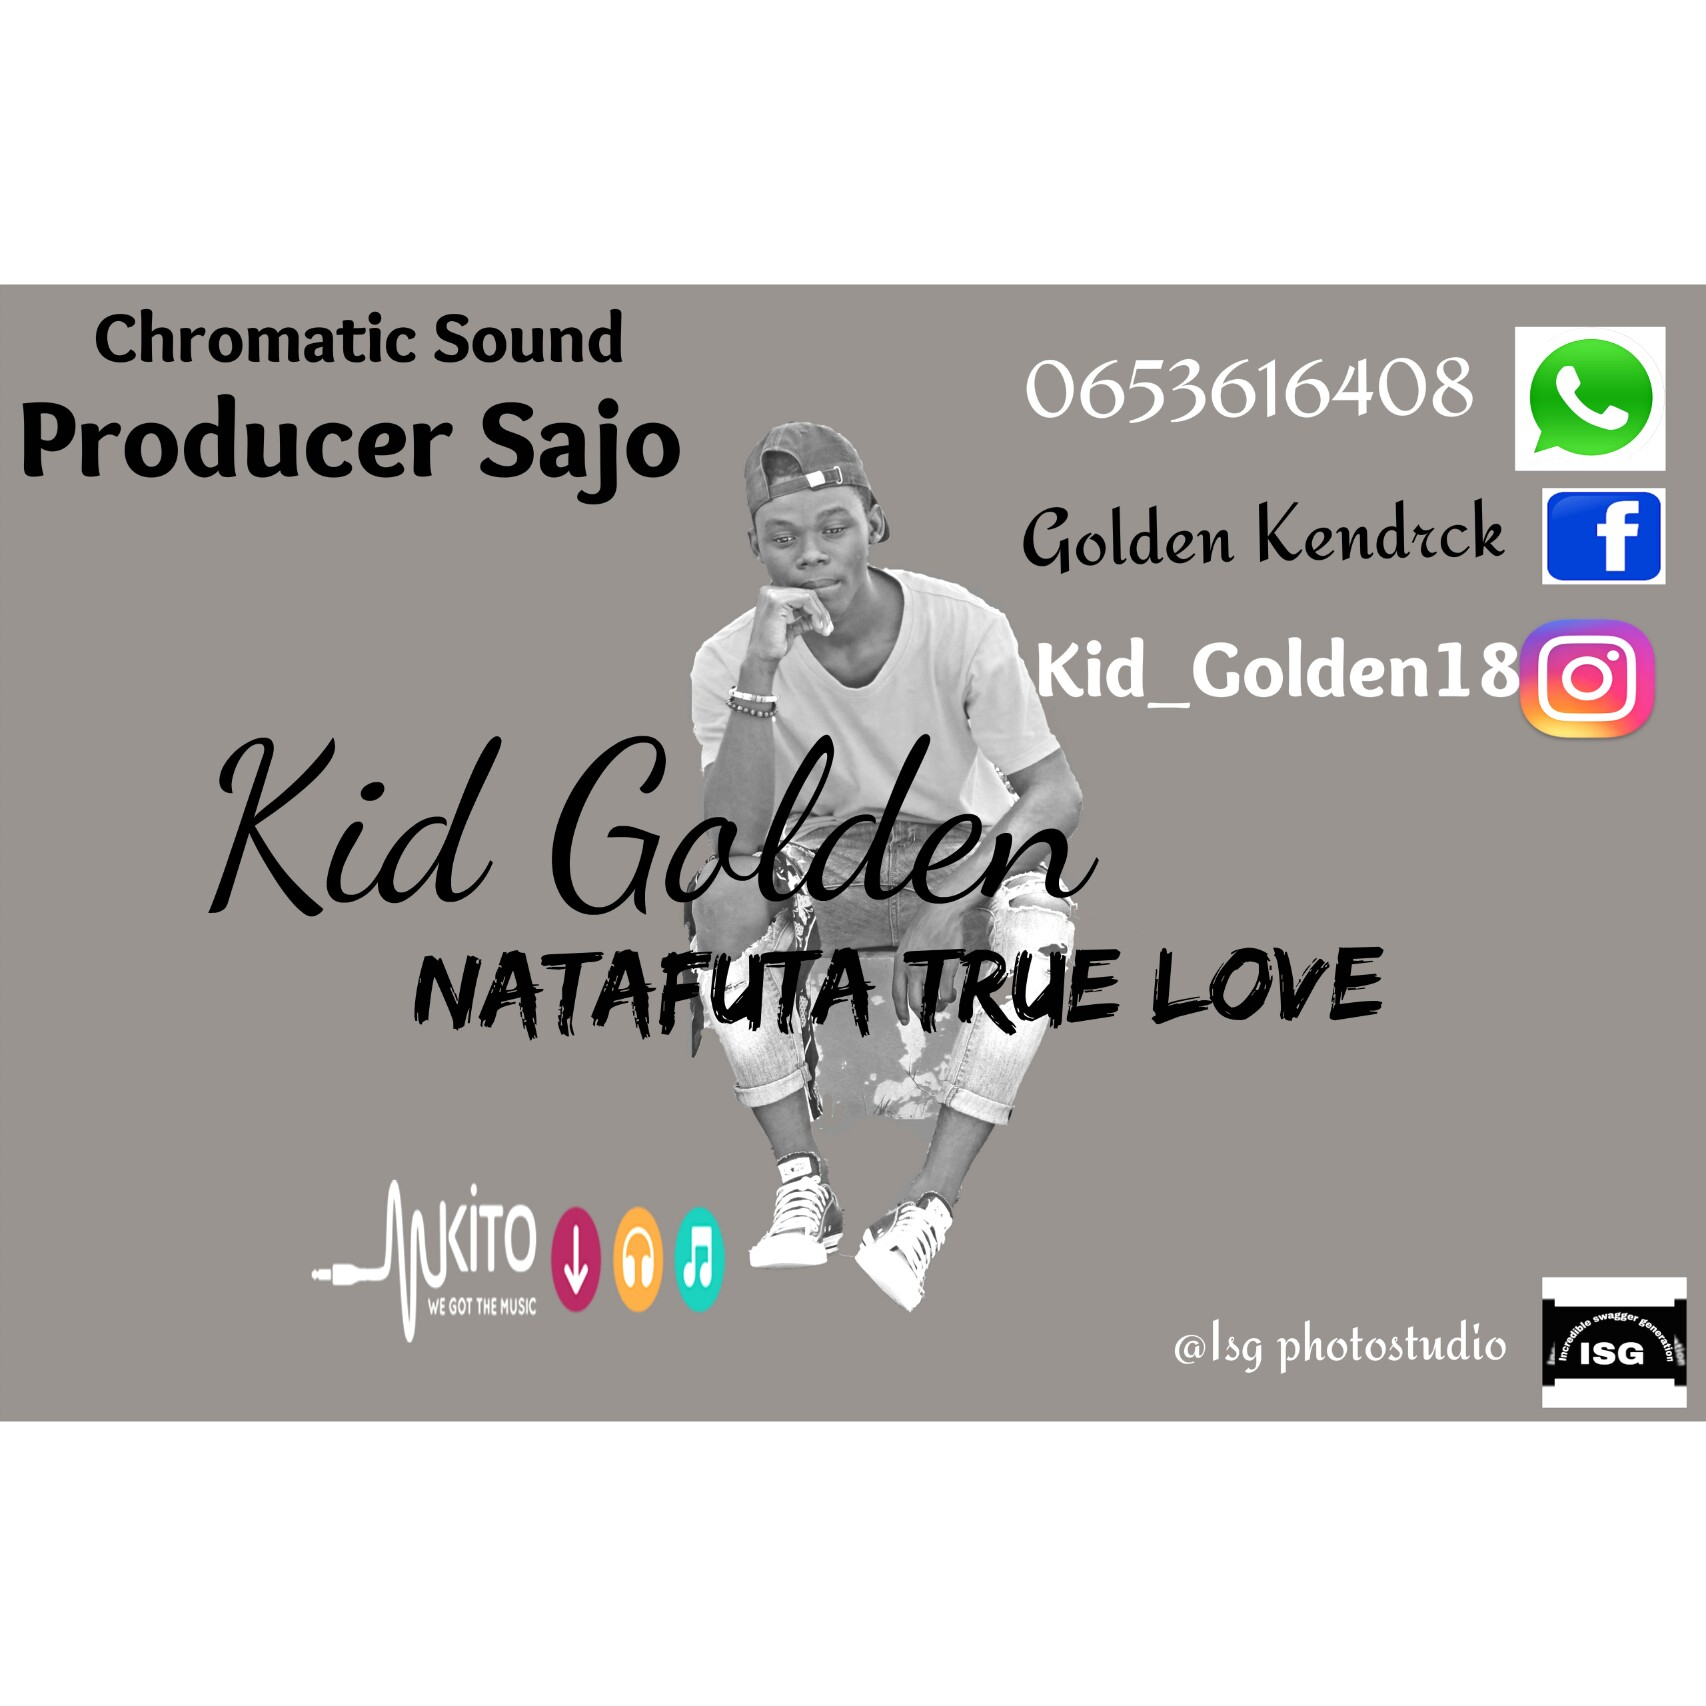 Kid Golden - Natafuta True Love